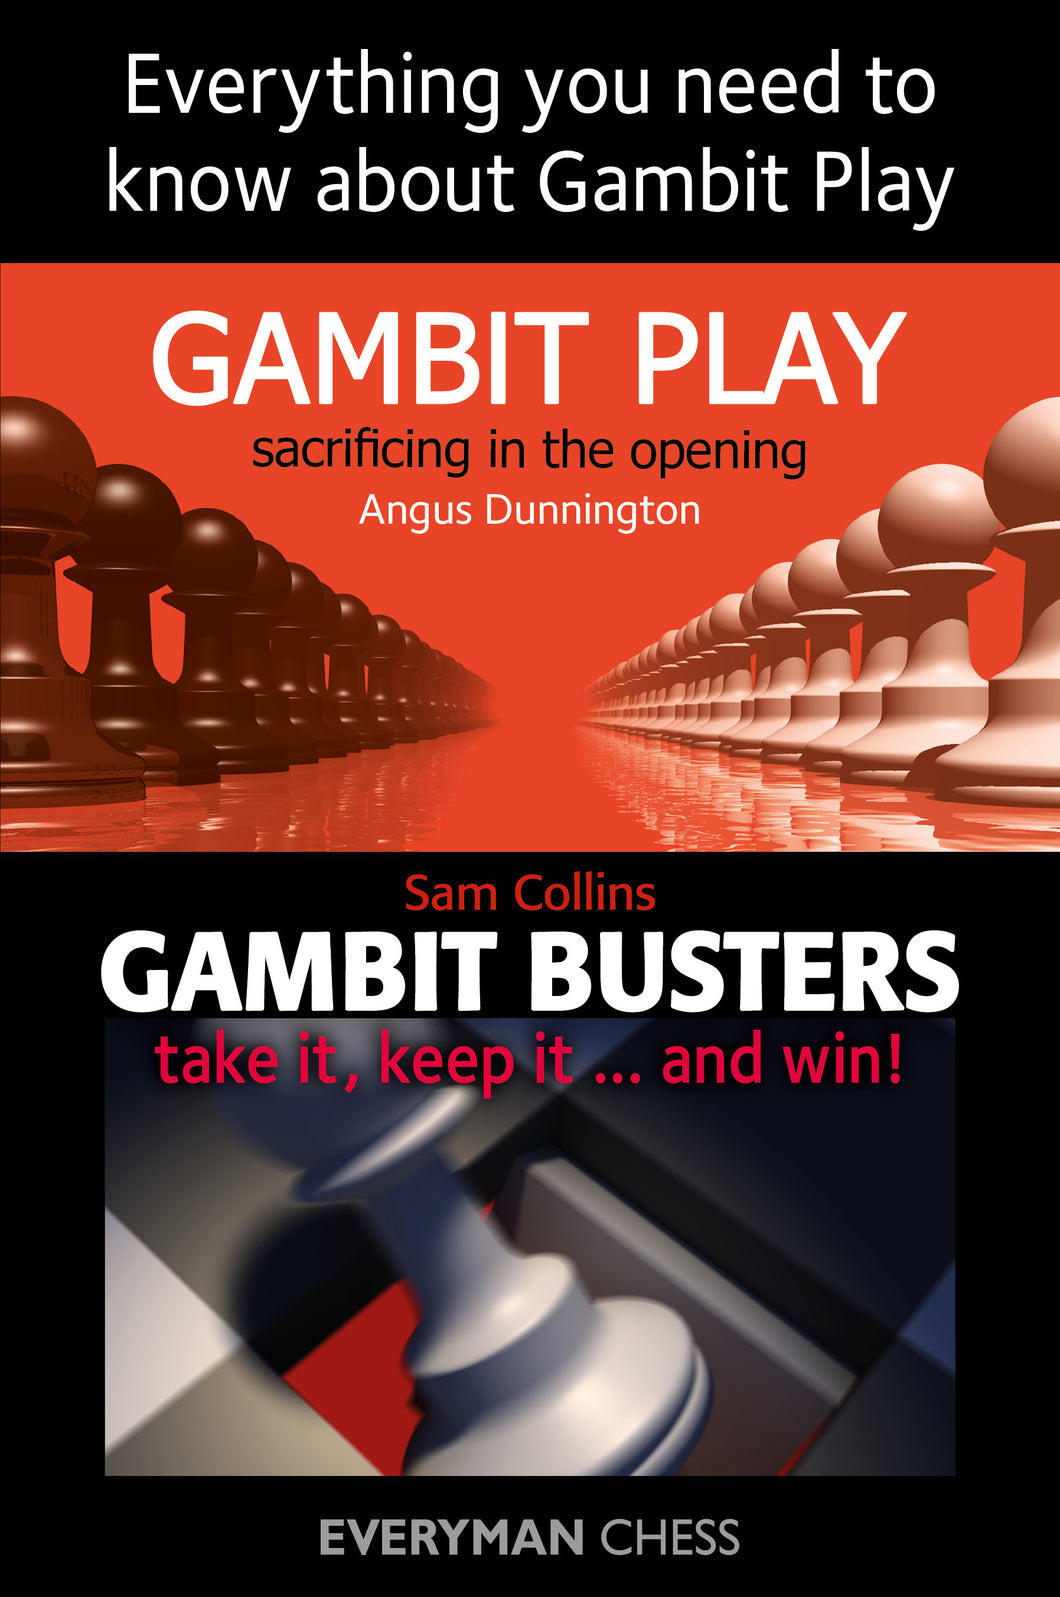 Everything You Need to Know About Gambit Play